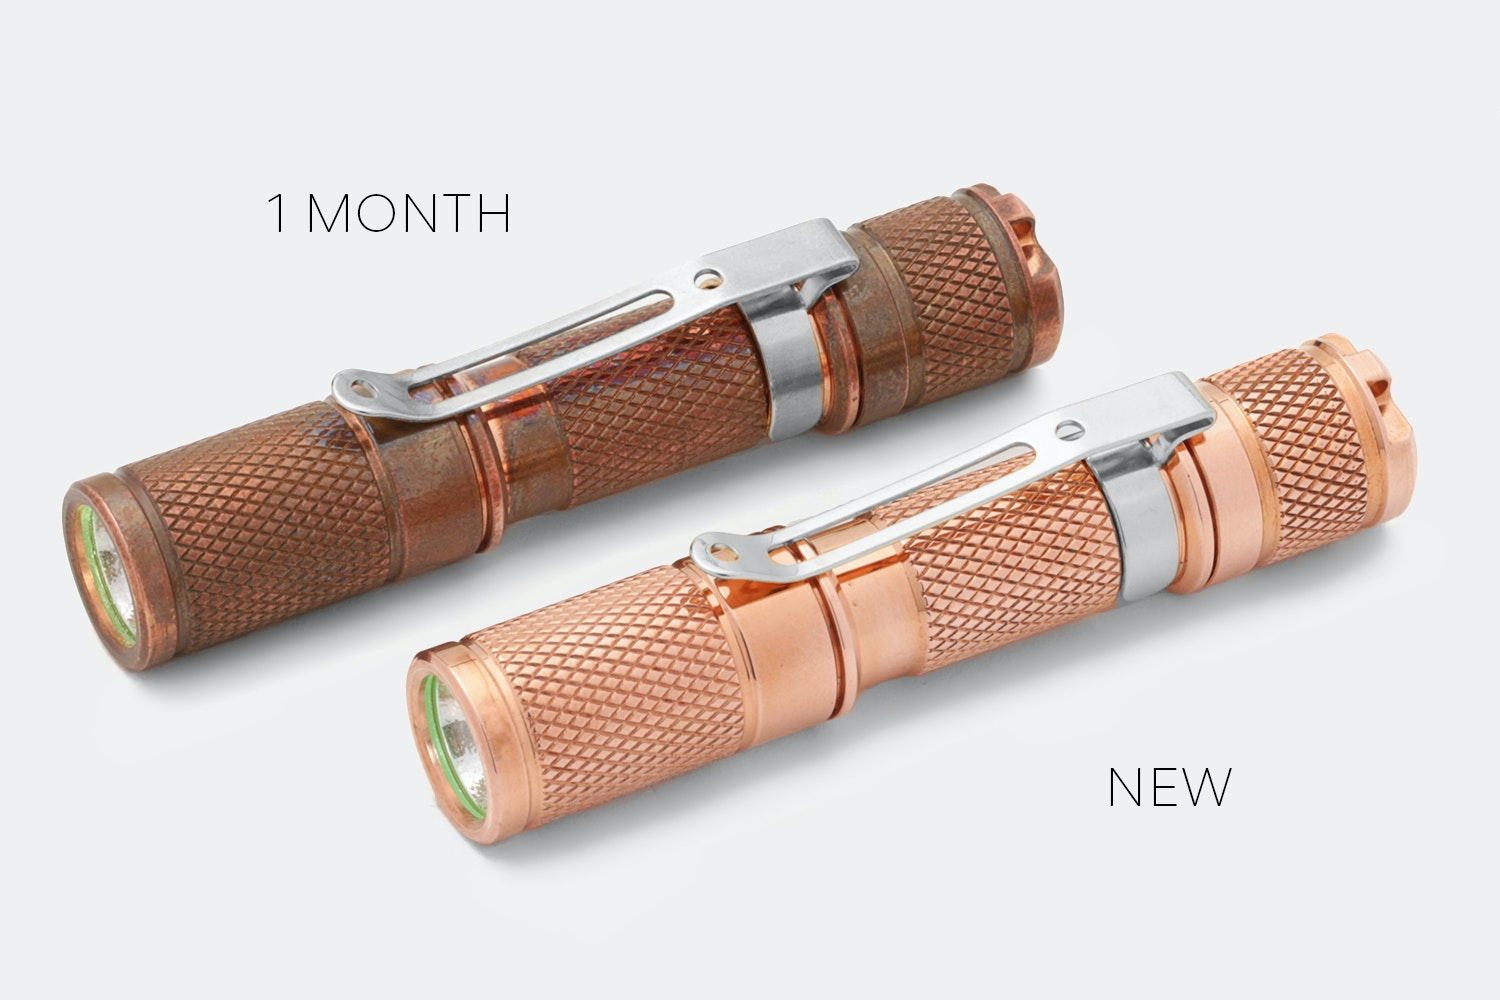 Massdrop Copper AAA Pocket Flashlight